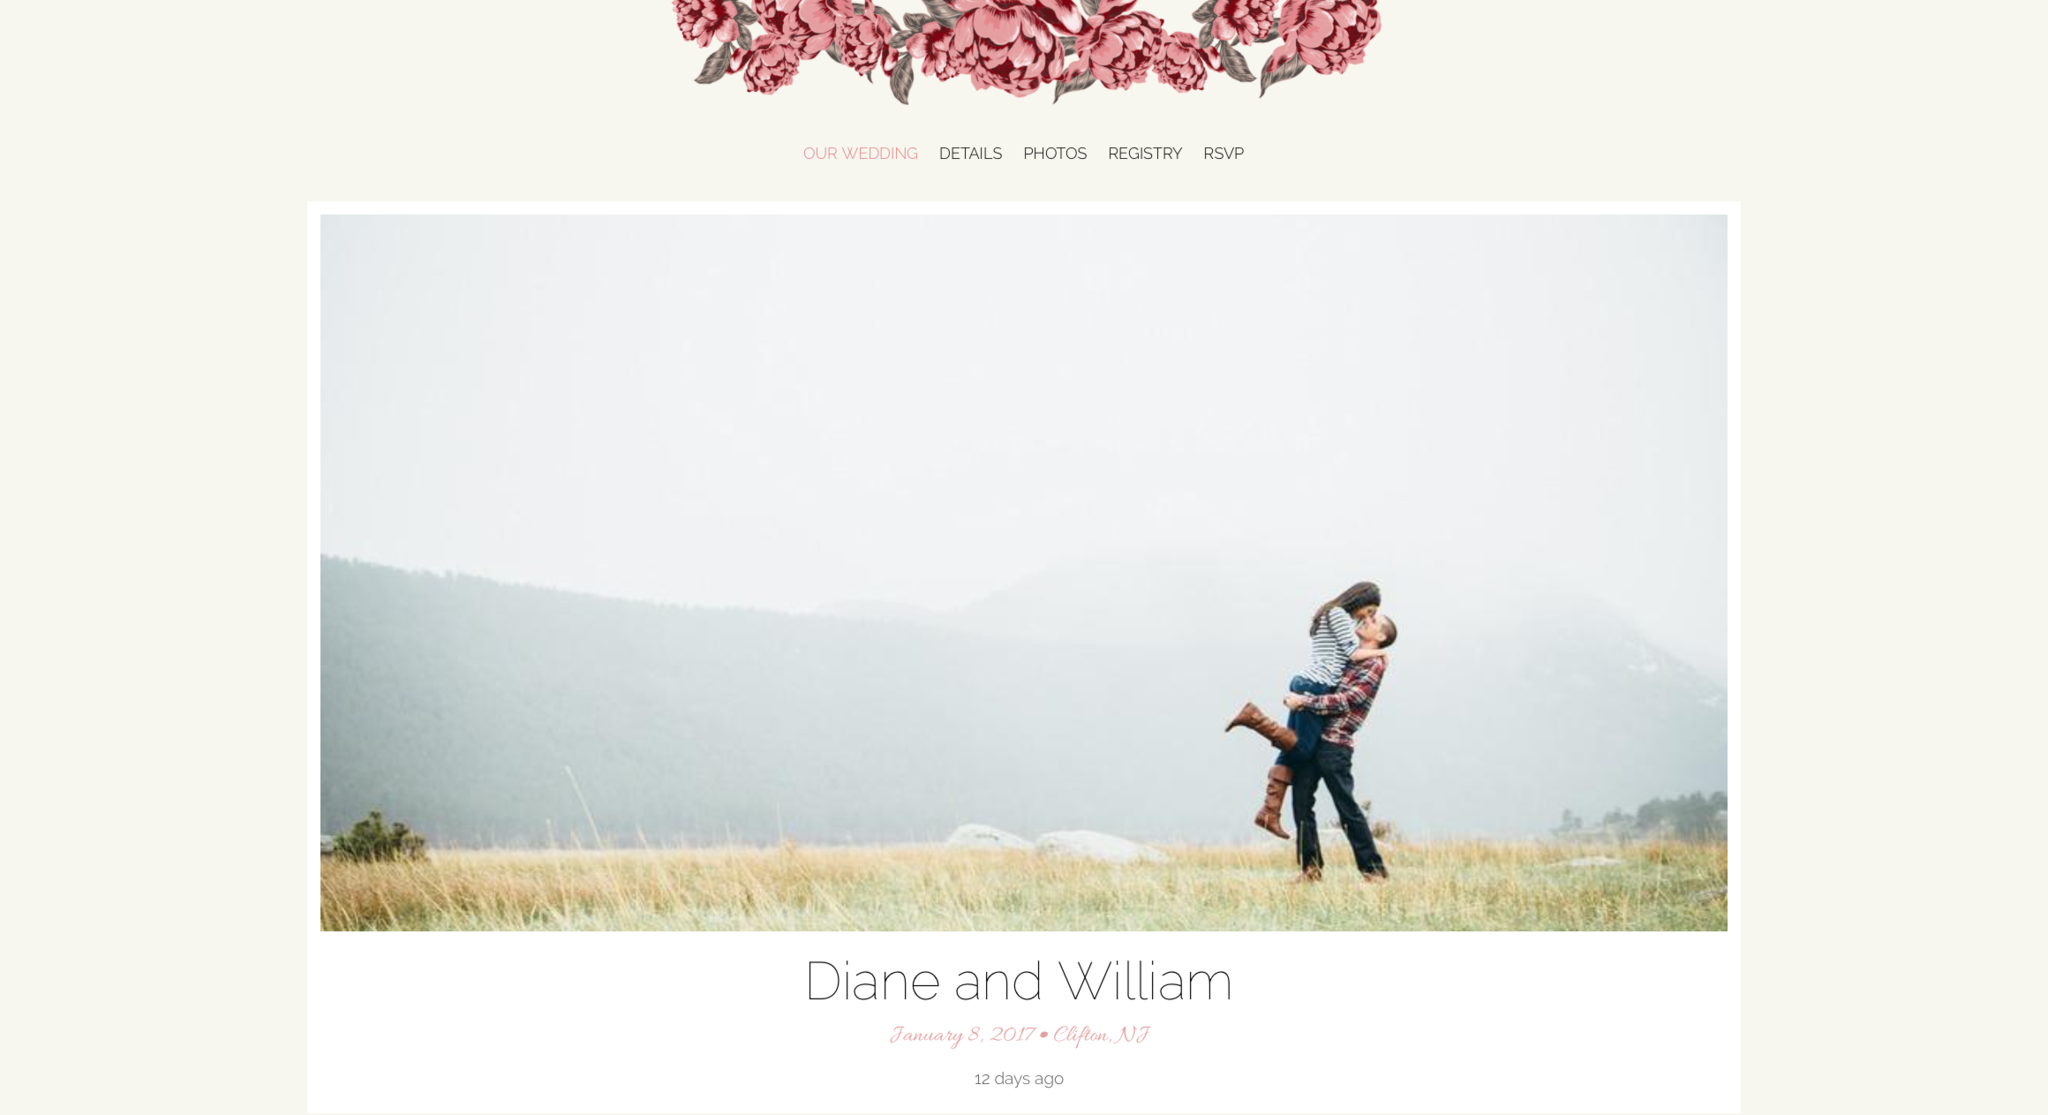 Wedding website design via The Knot